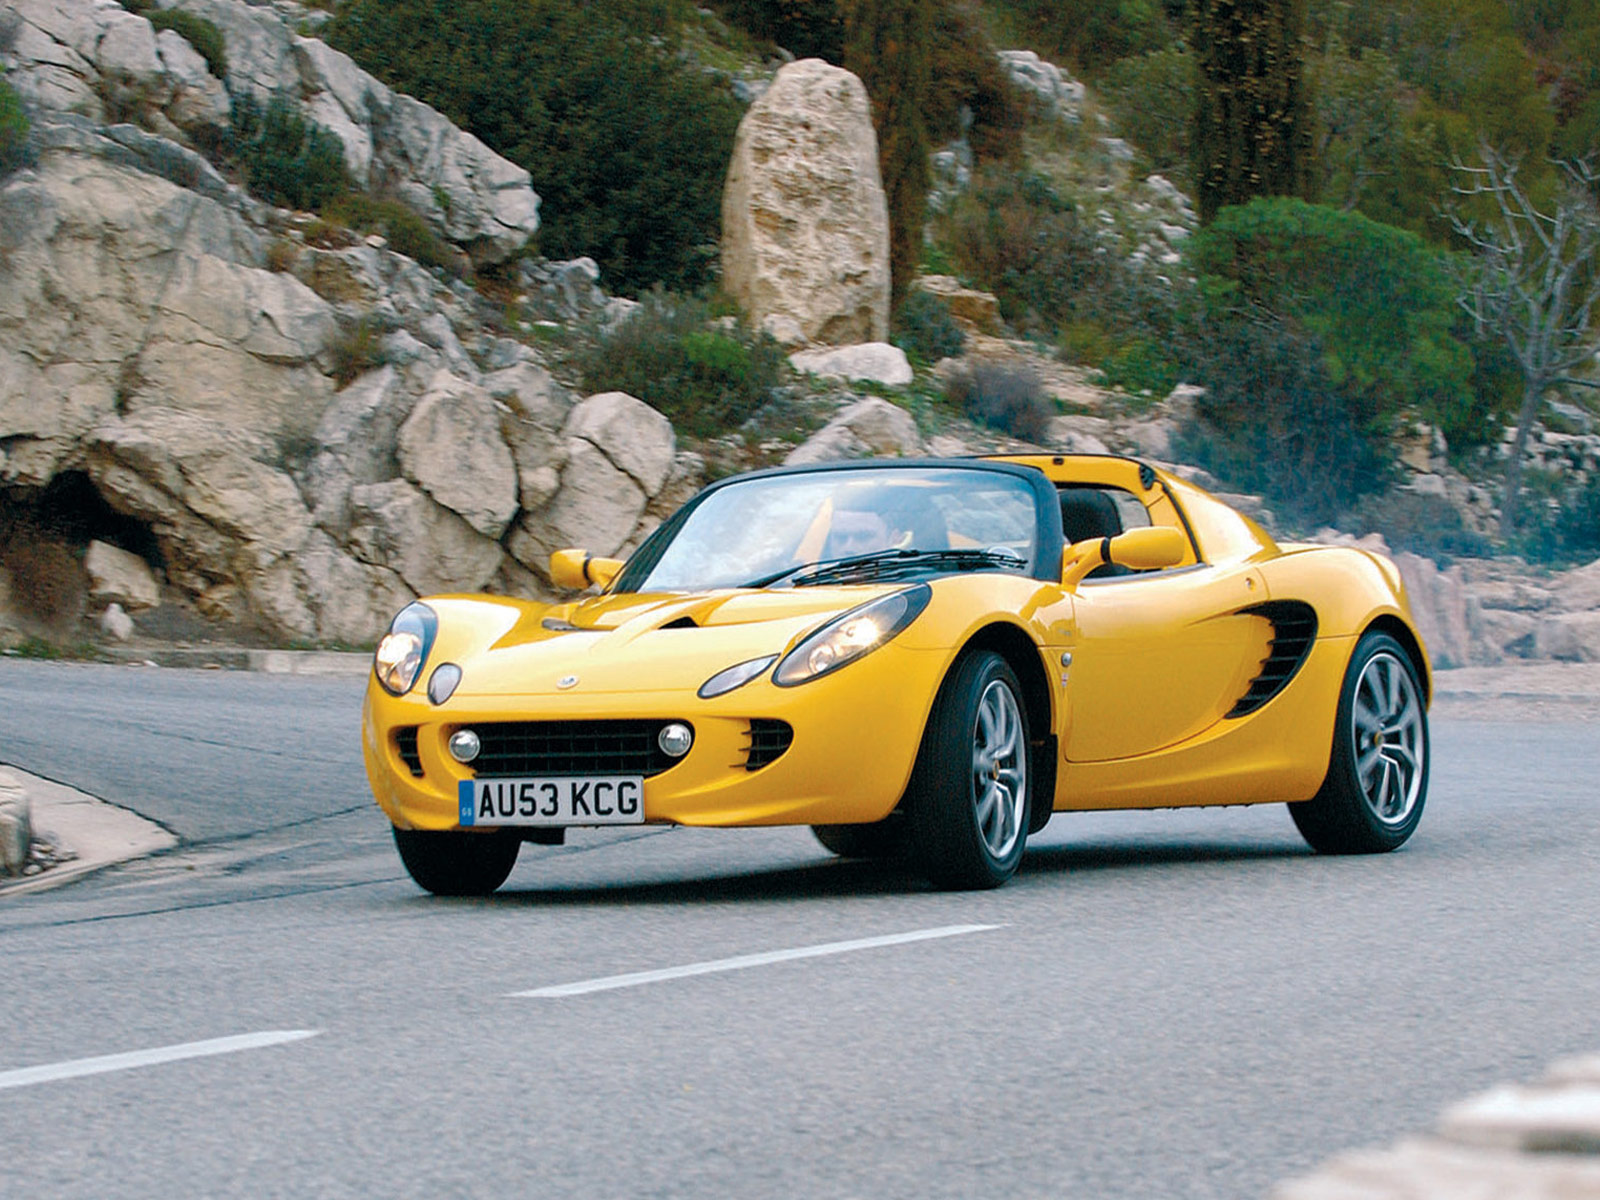 2005 lotus elise lotus car picture. Black Bedroom Furniture Sets. Home Design Ideas